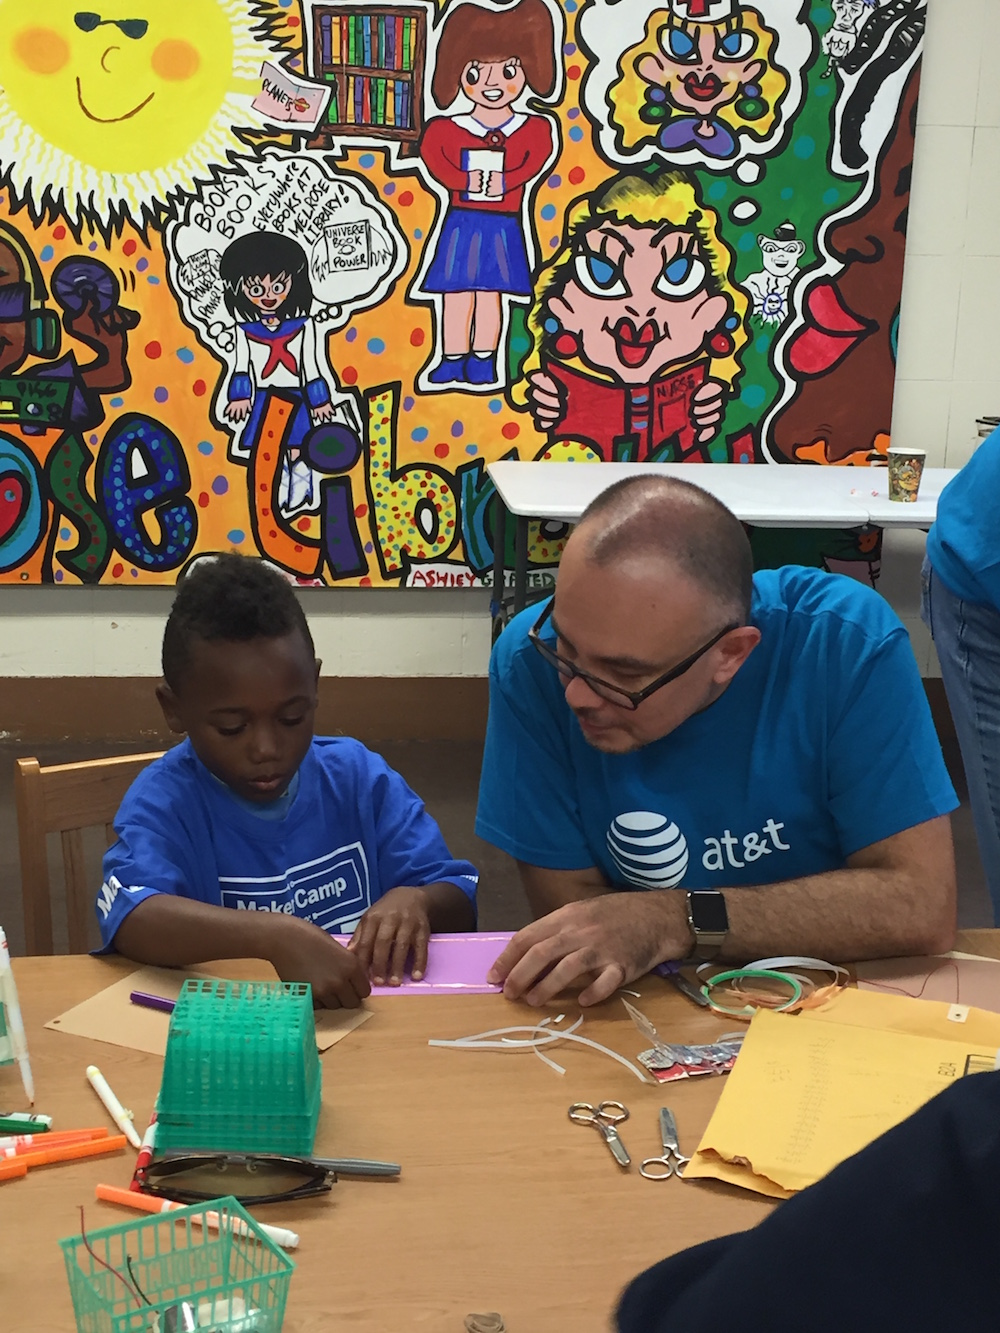 A Moving Visit to Maker Camp